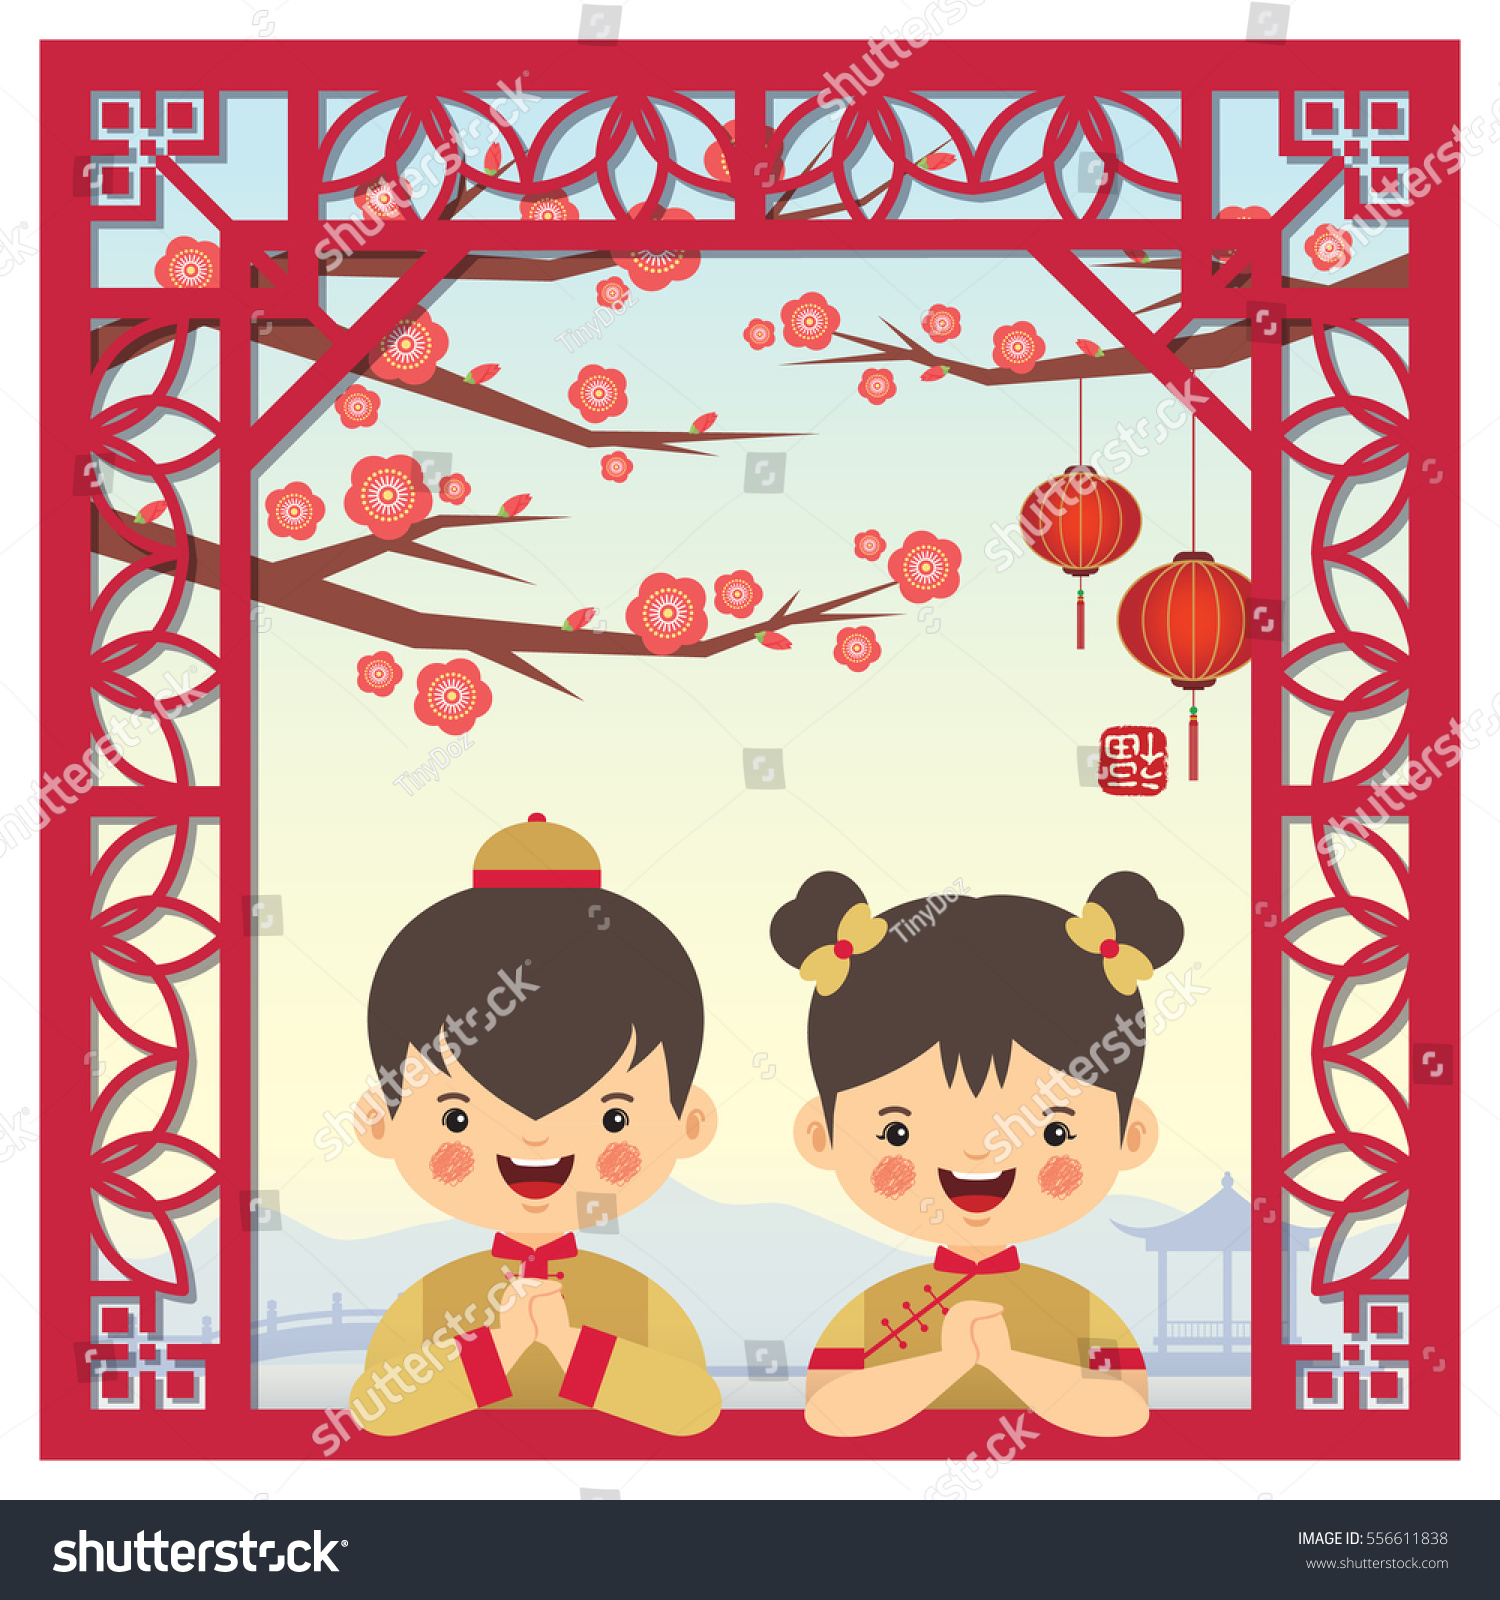 Chinese new year greeting card cute stock vector 556611838 chinese new year greeting card with cute cartoon chinese boy and girl with chinese vintage frame kristyandbryce Choice Image